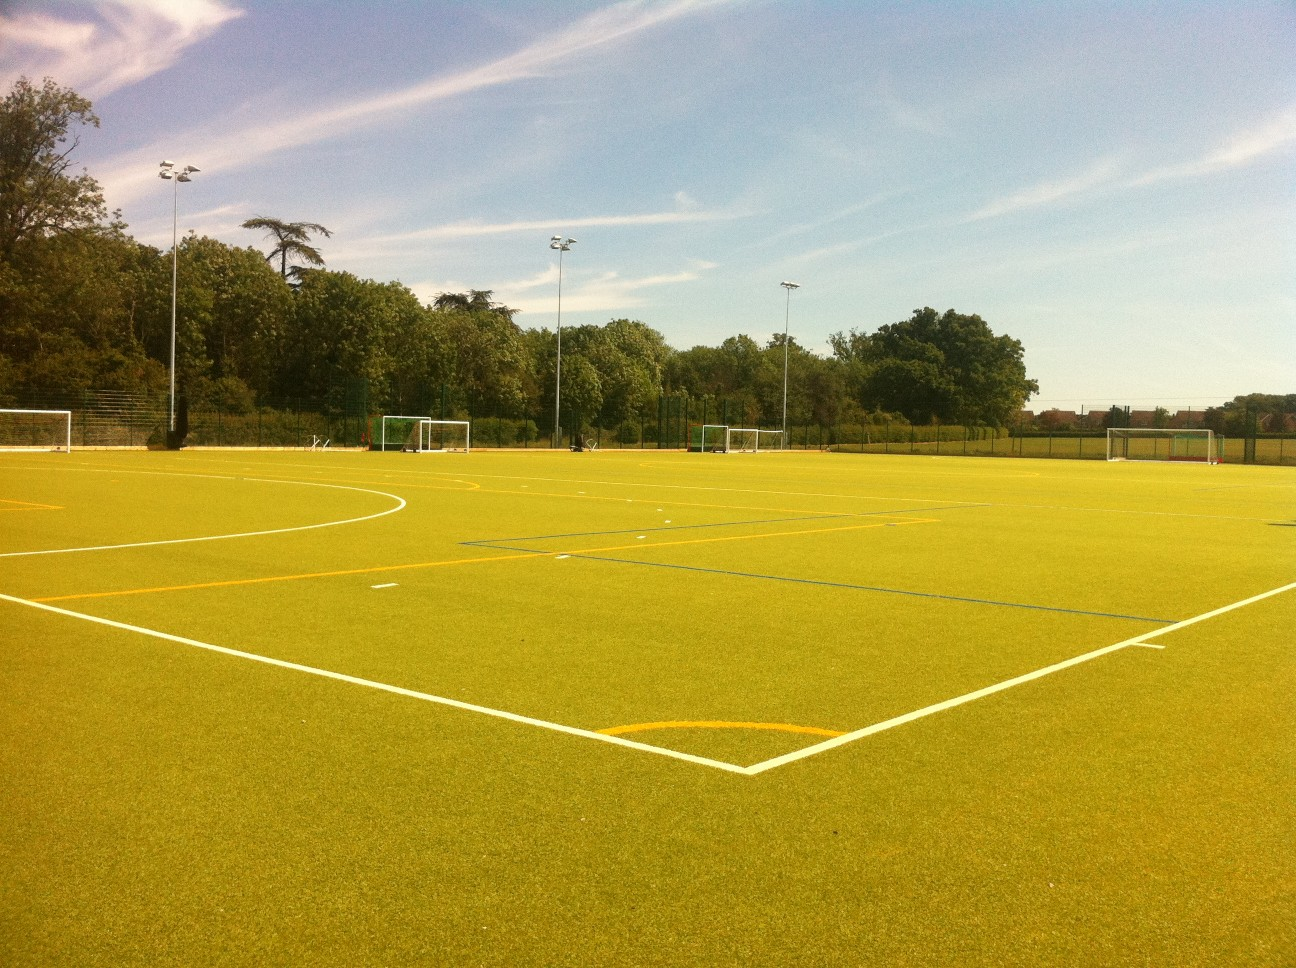 ETC Sports Surfaces have 30 years' experience in artificial grass installations for a wide range of sports pitches.